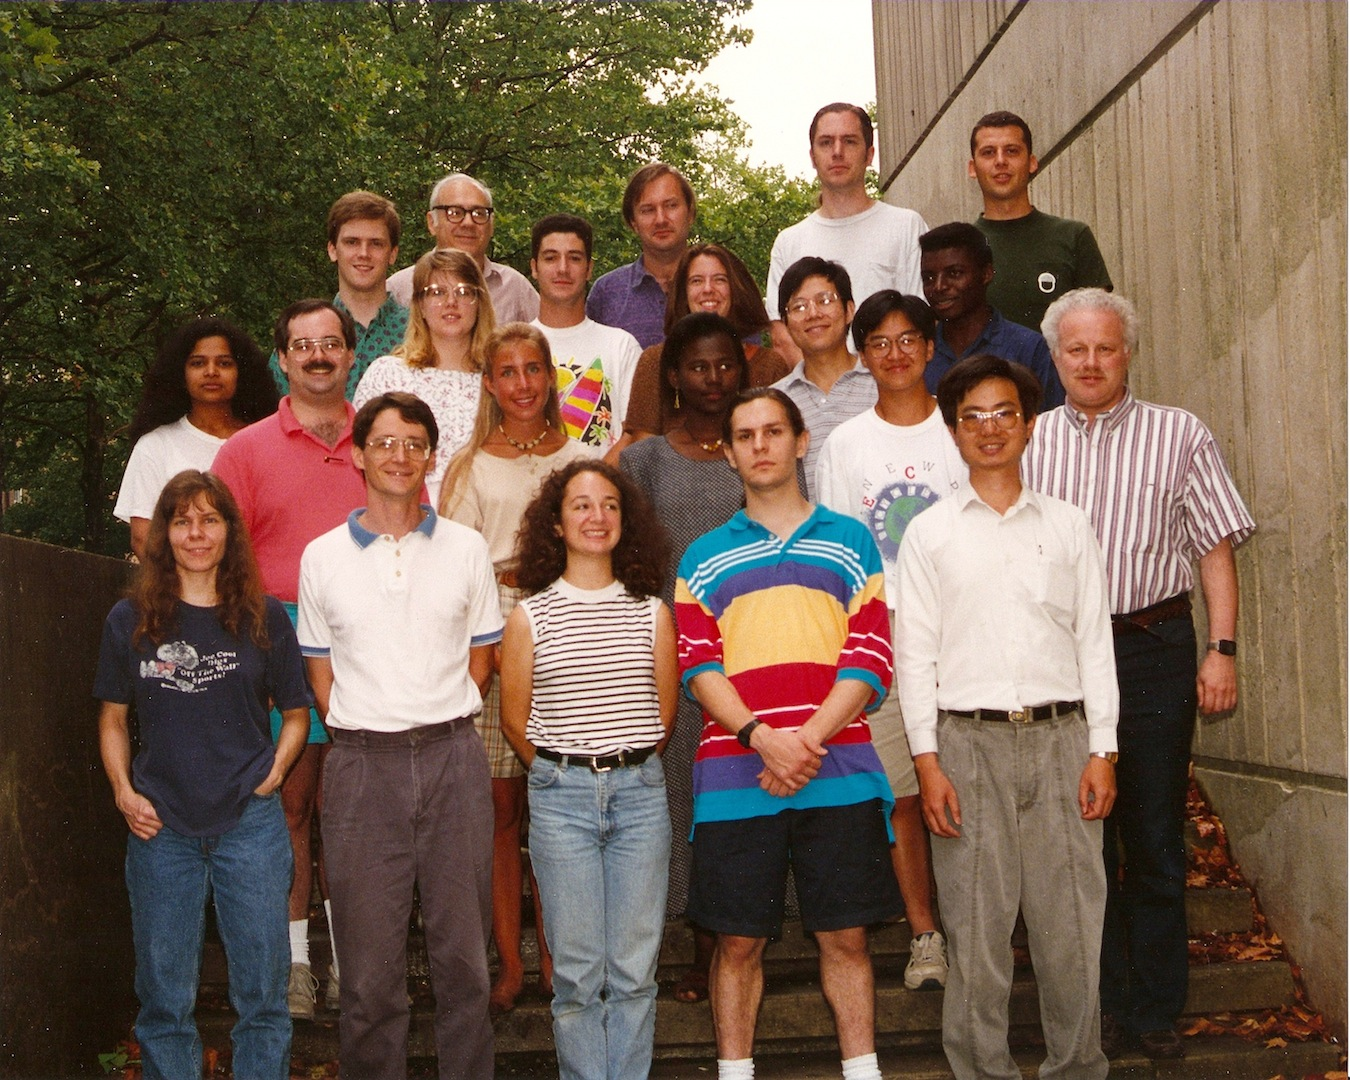 1994 Group Photo